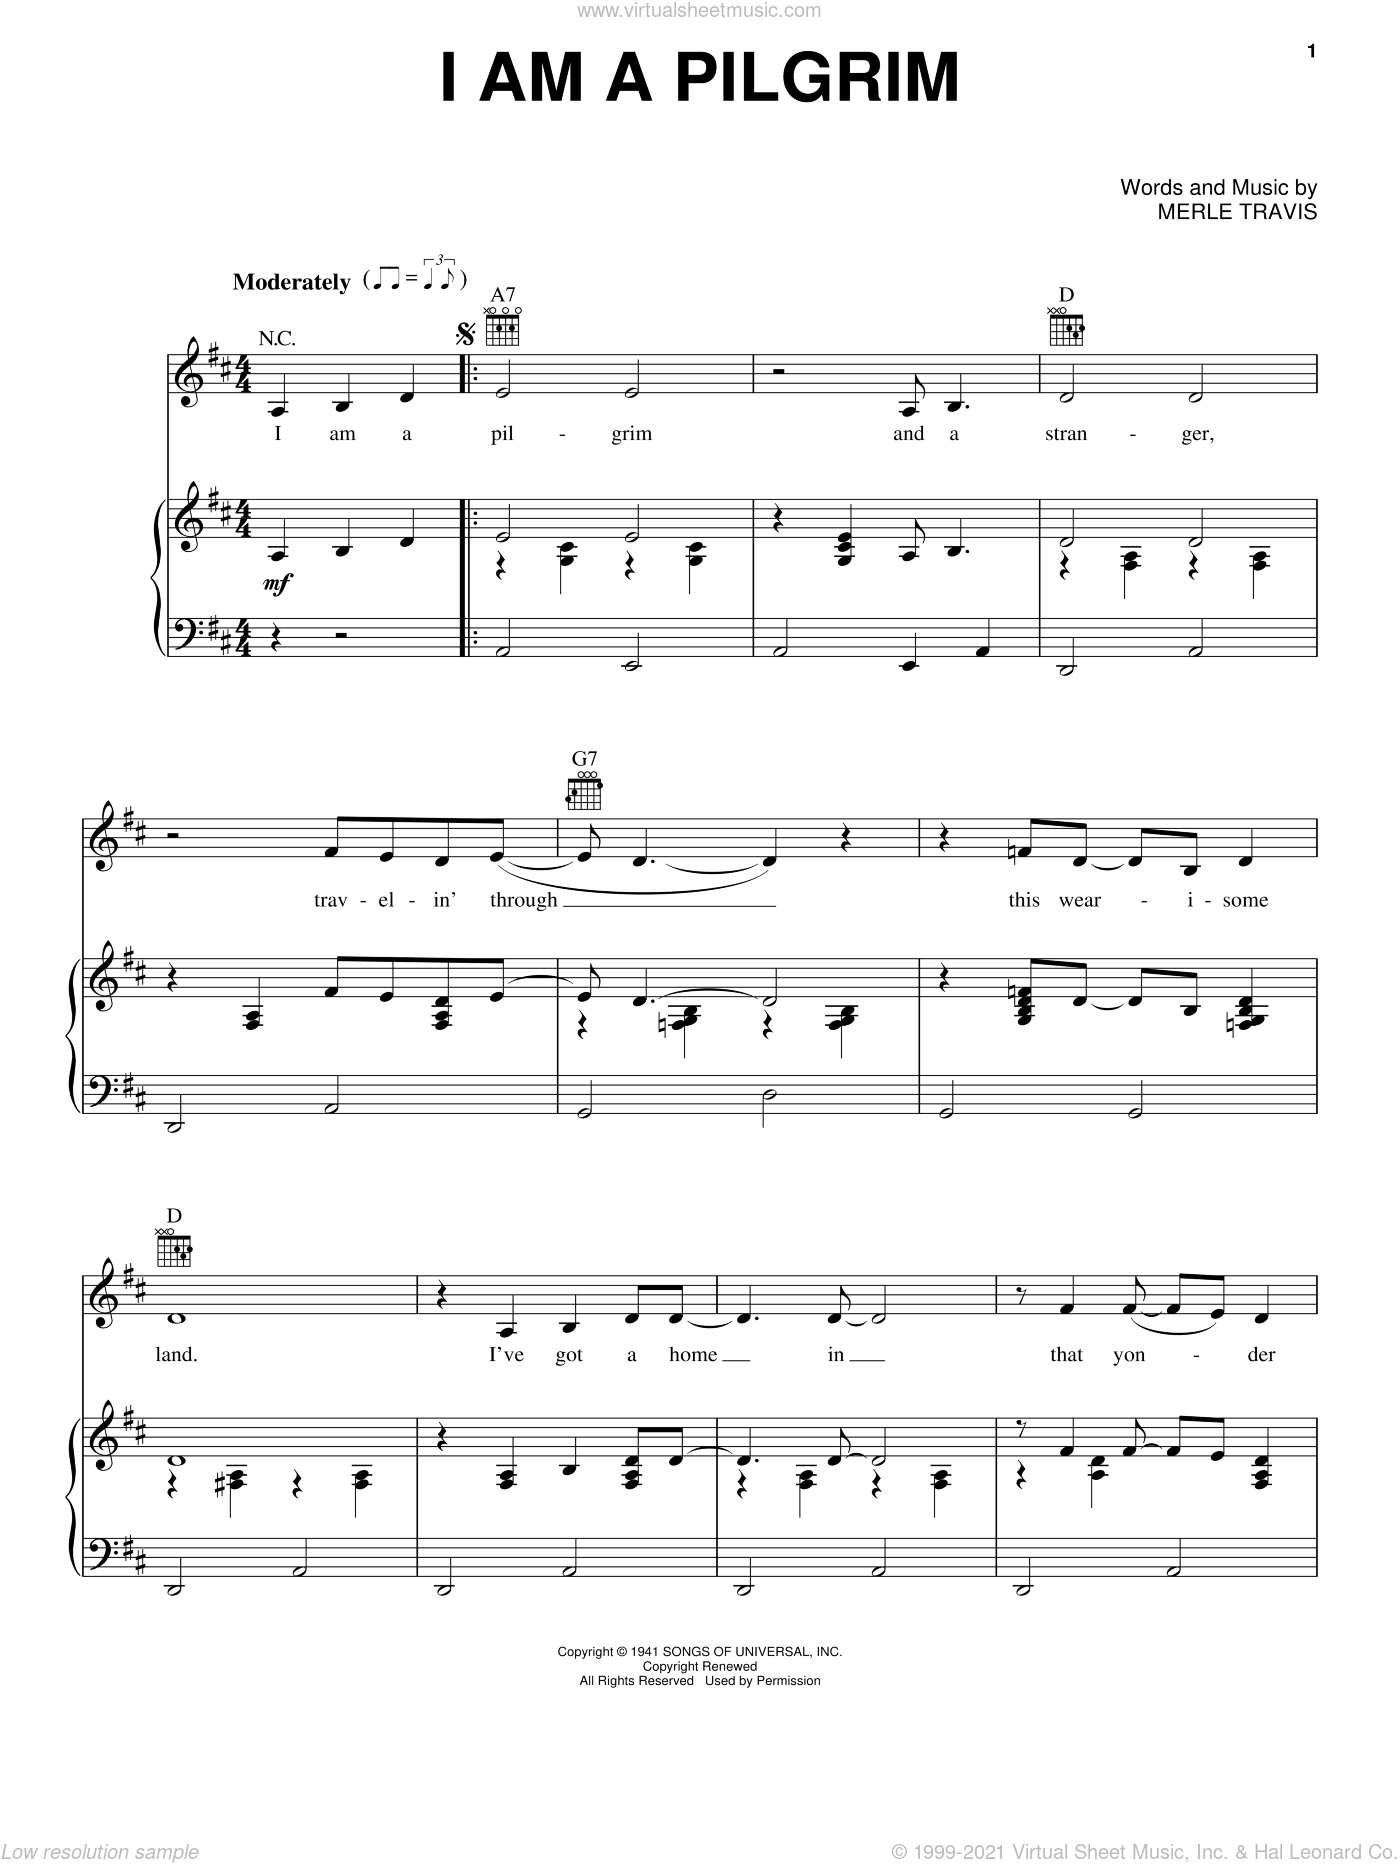 I Am A Pilgrim sheet music for voice, piano or guitar by Johnny Cash and Merle Travis, intermediate skill level